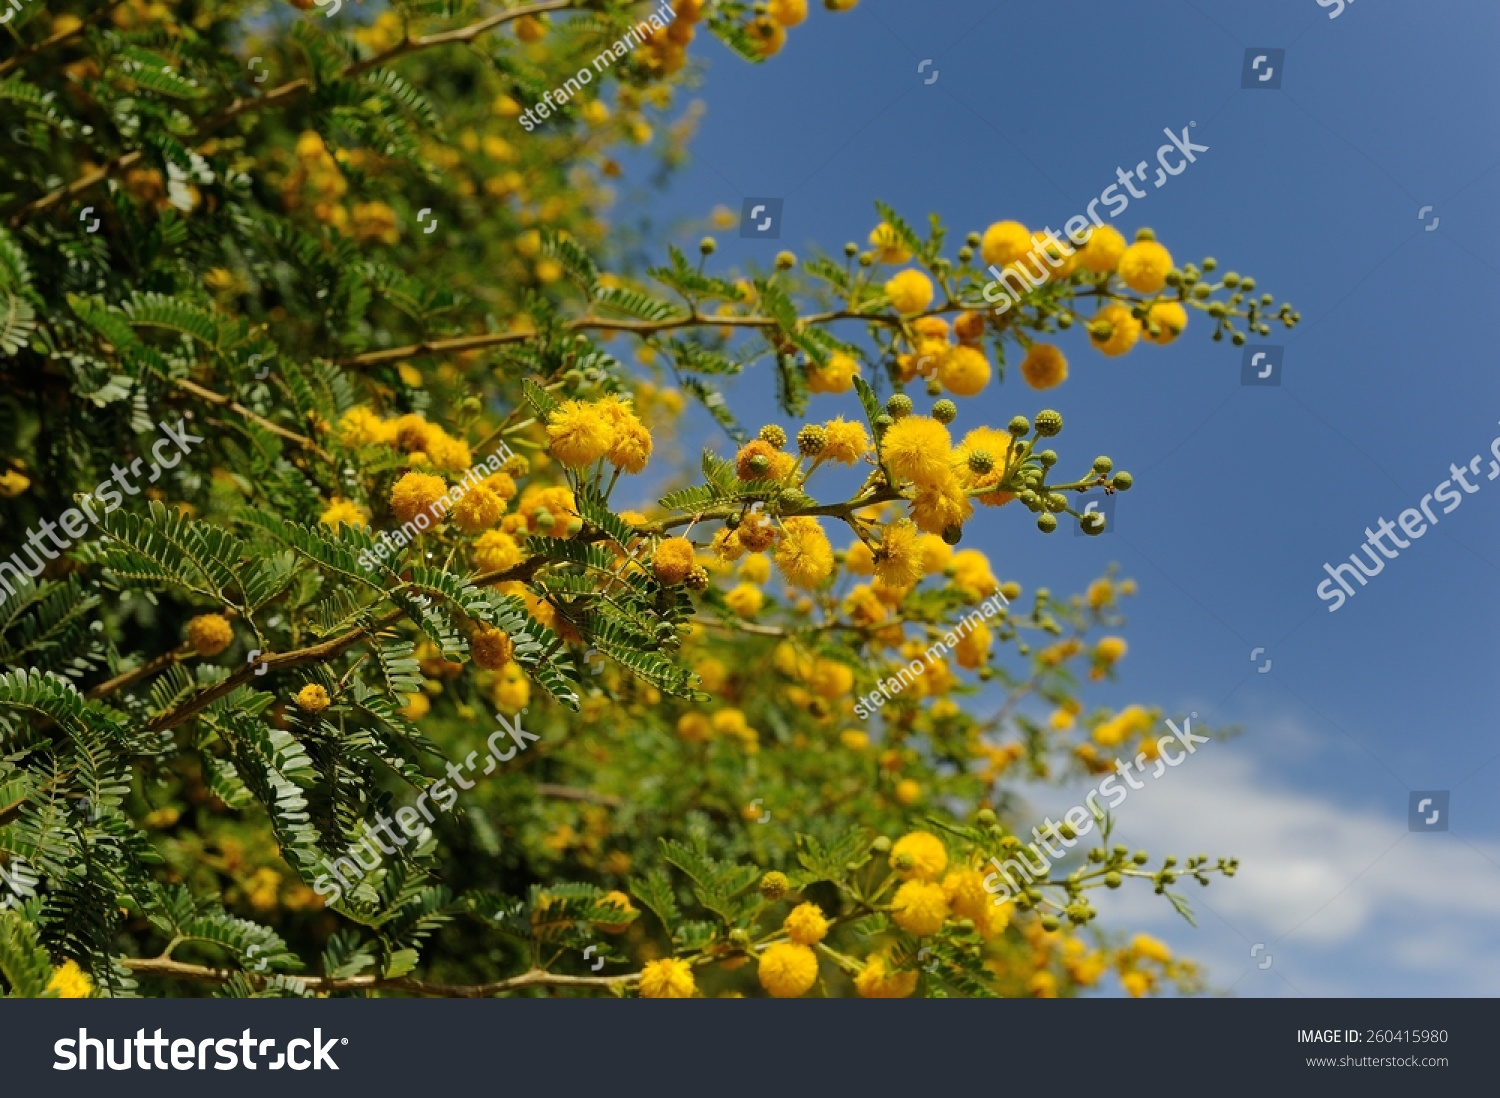 A yellow flower called mimosa with green leafs on a tree ez canvas id 260415980 mightylinksfo